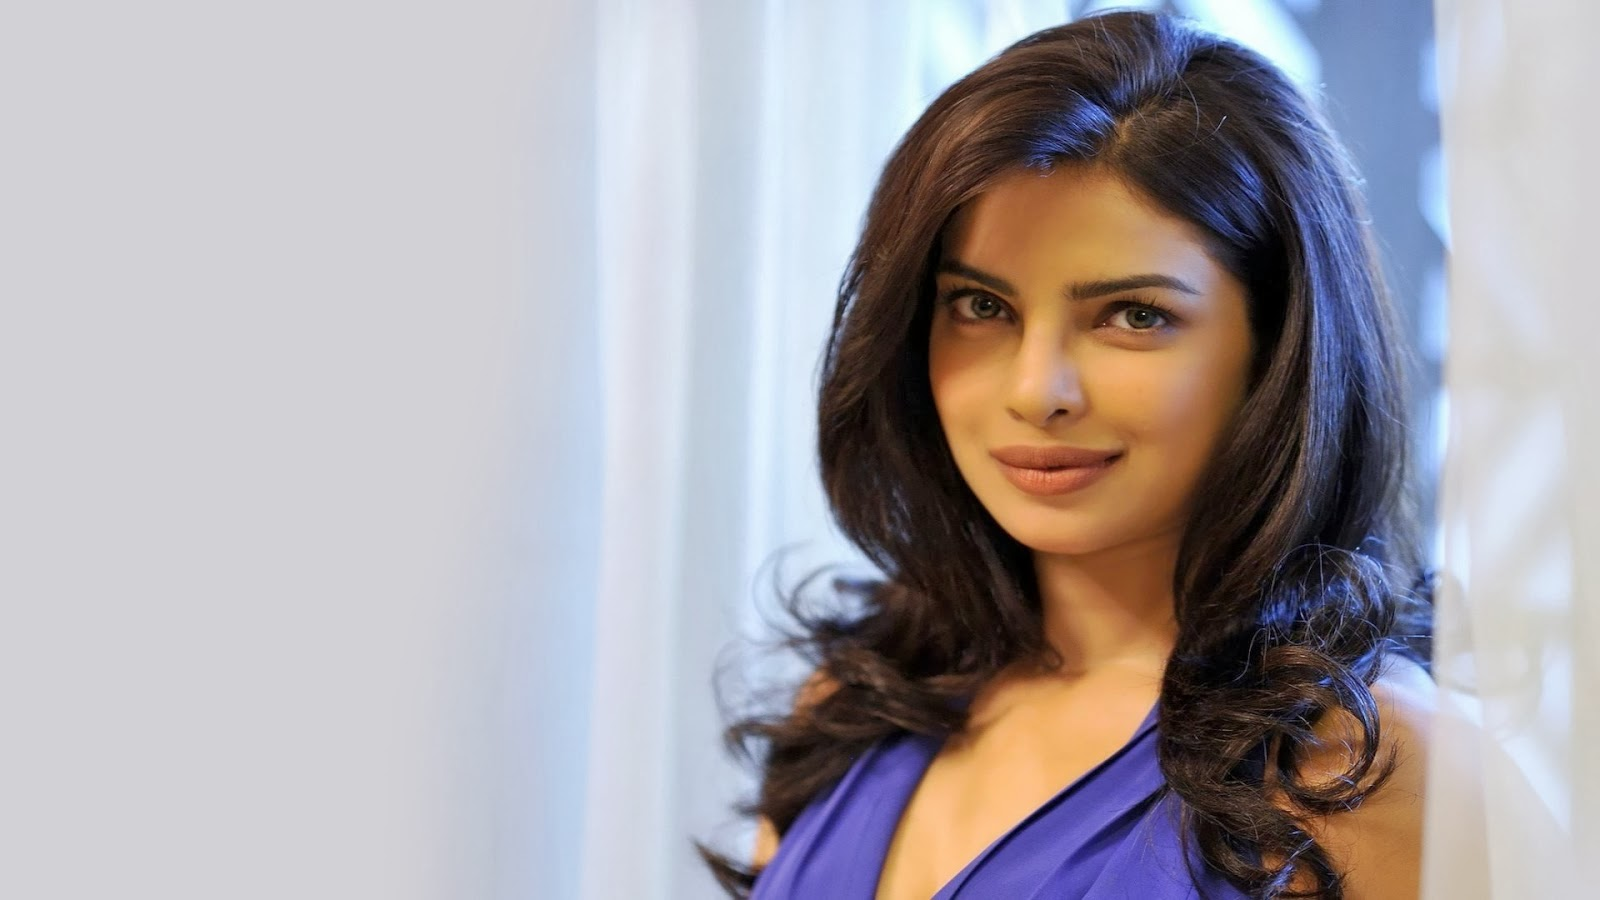 All Hot Informations Download Priyanka Chopra Hd Wallpapers In 1080p